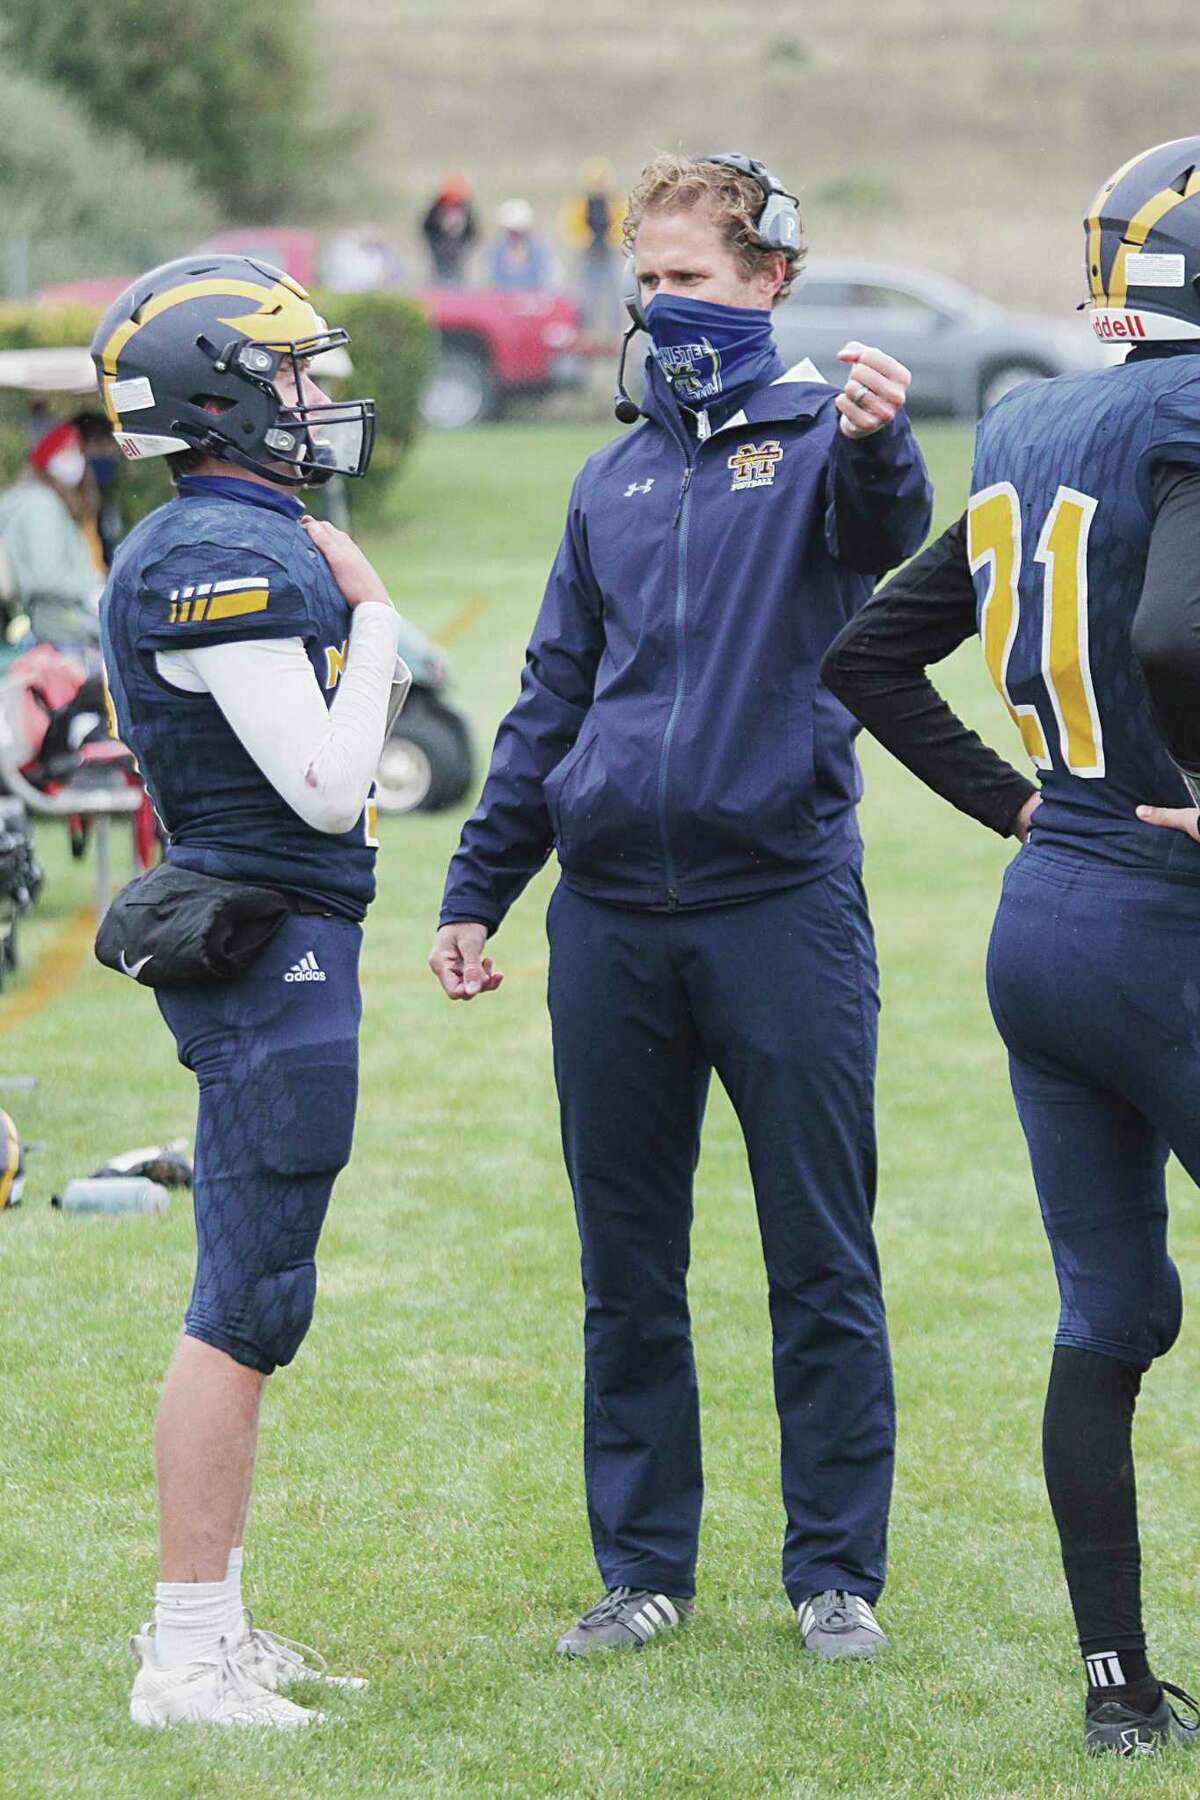 Manistee football coach Troy Bytwork was named regional coach of the year by the Michigan High School Football Coaches Association. (News Advocate file photo)